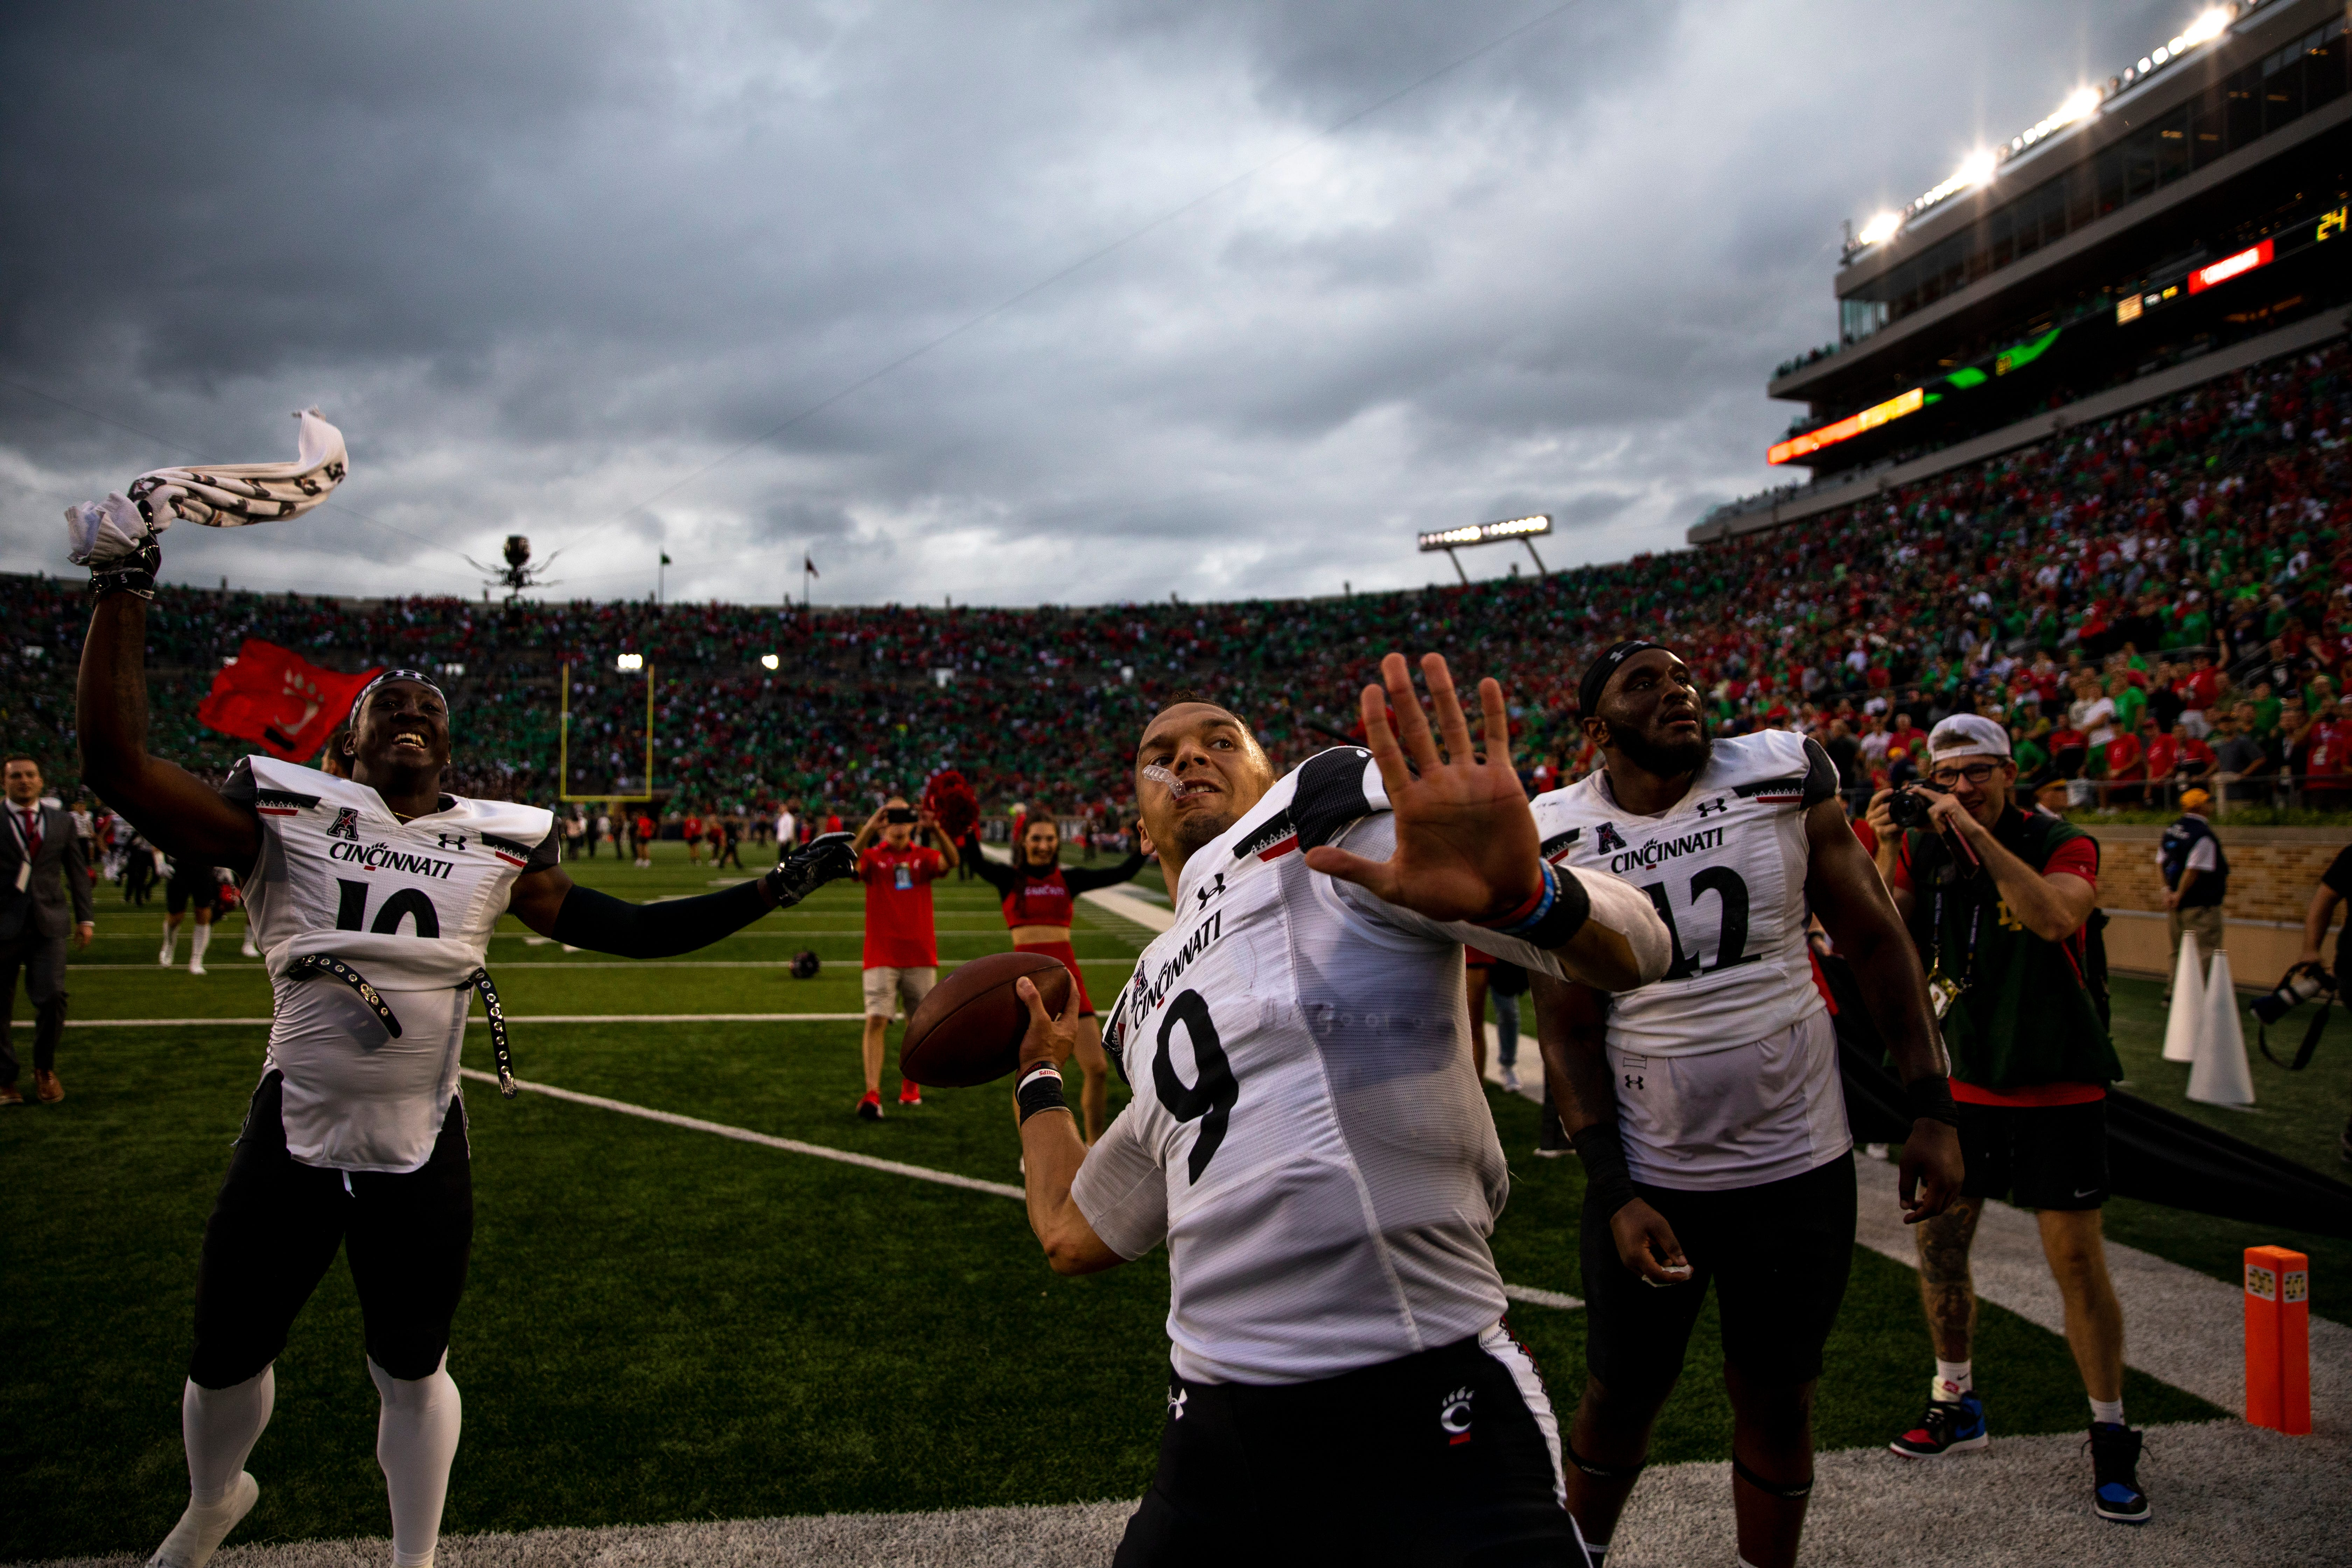 Doc's Morning Line: The UC Bearcats did something that honored my 30-year run on suffering